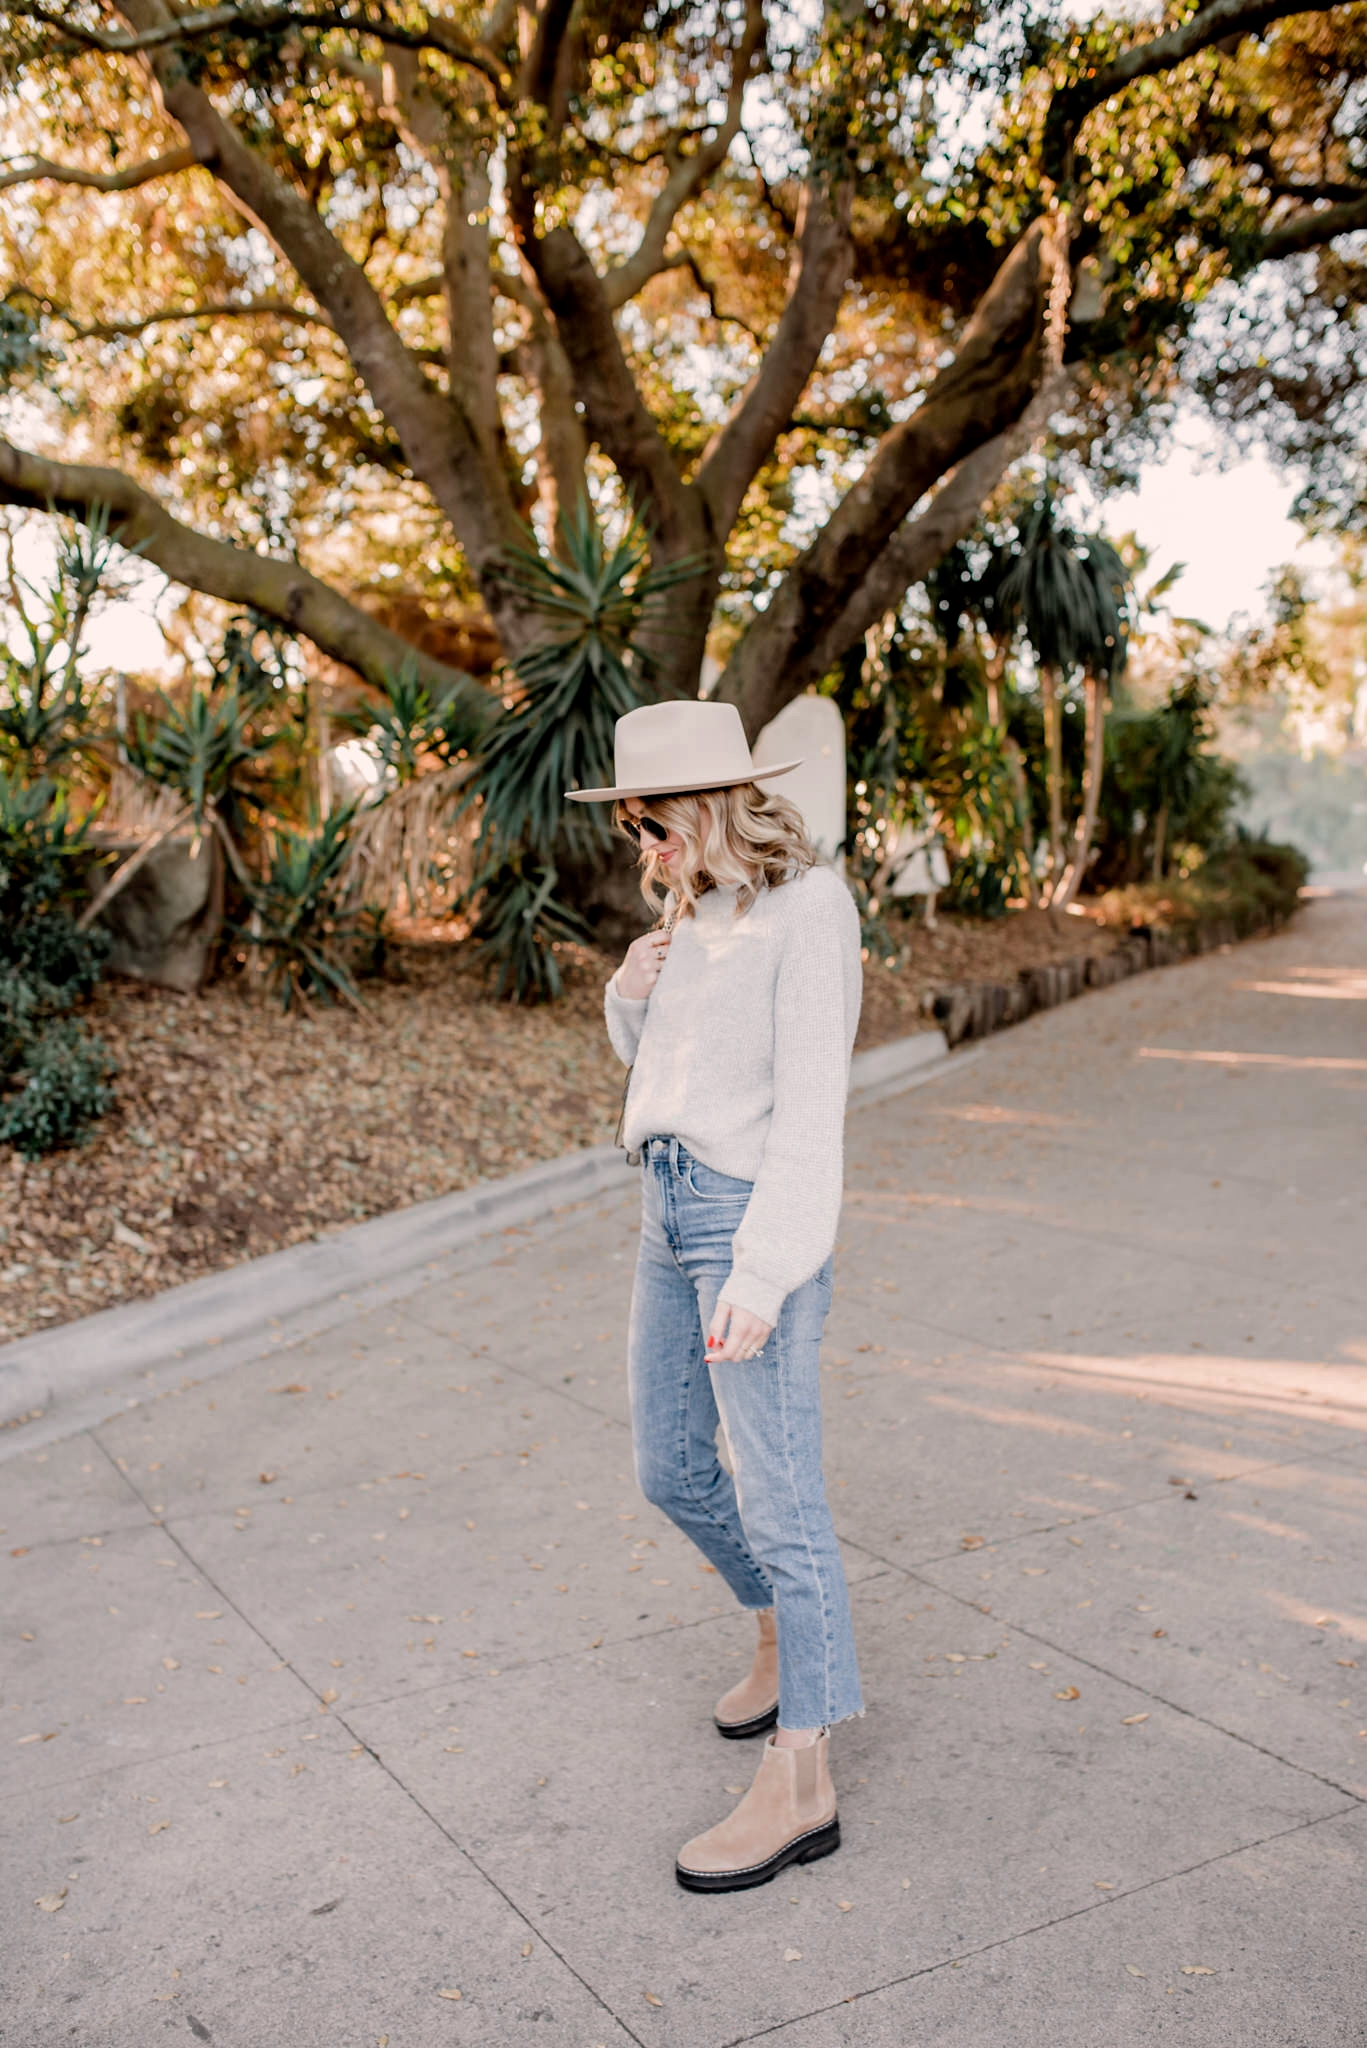 top 10 items of 2020 |Top Items by popular San Diego fashion blog, Navy Grace: image of a woman wearing a grey sweater, tan Gigi Pip fedora, jeans, and tan suede ankle boots.